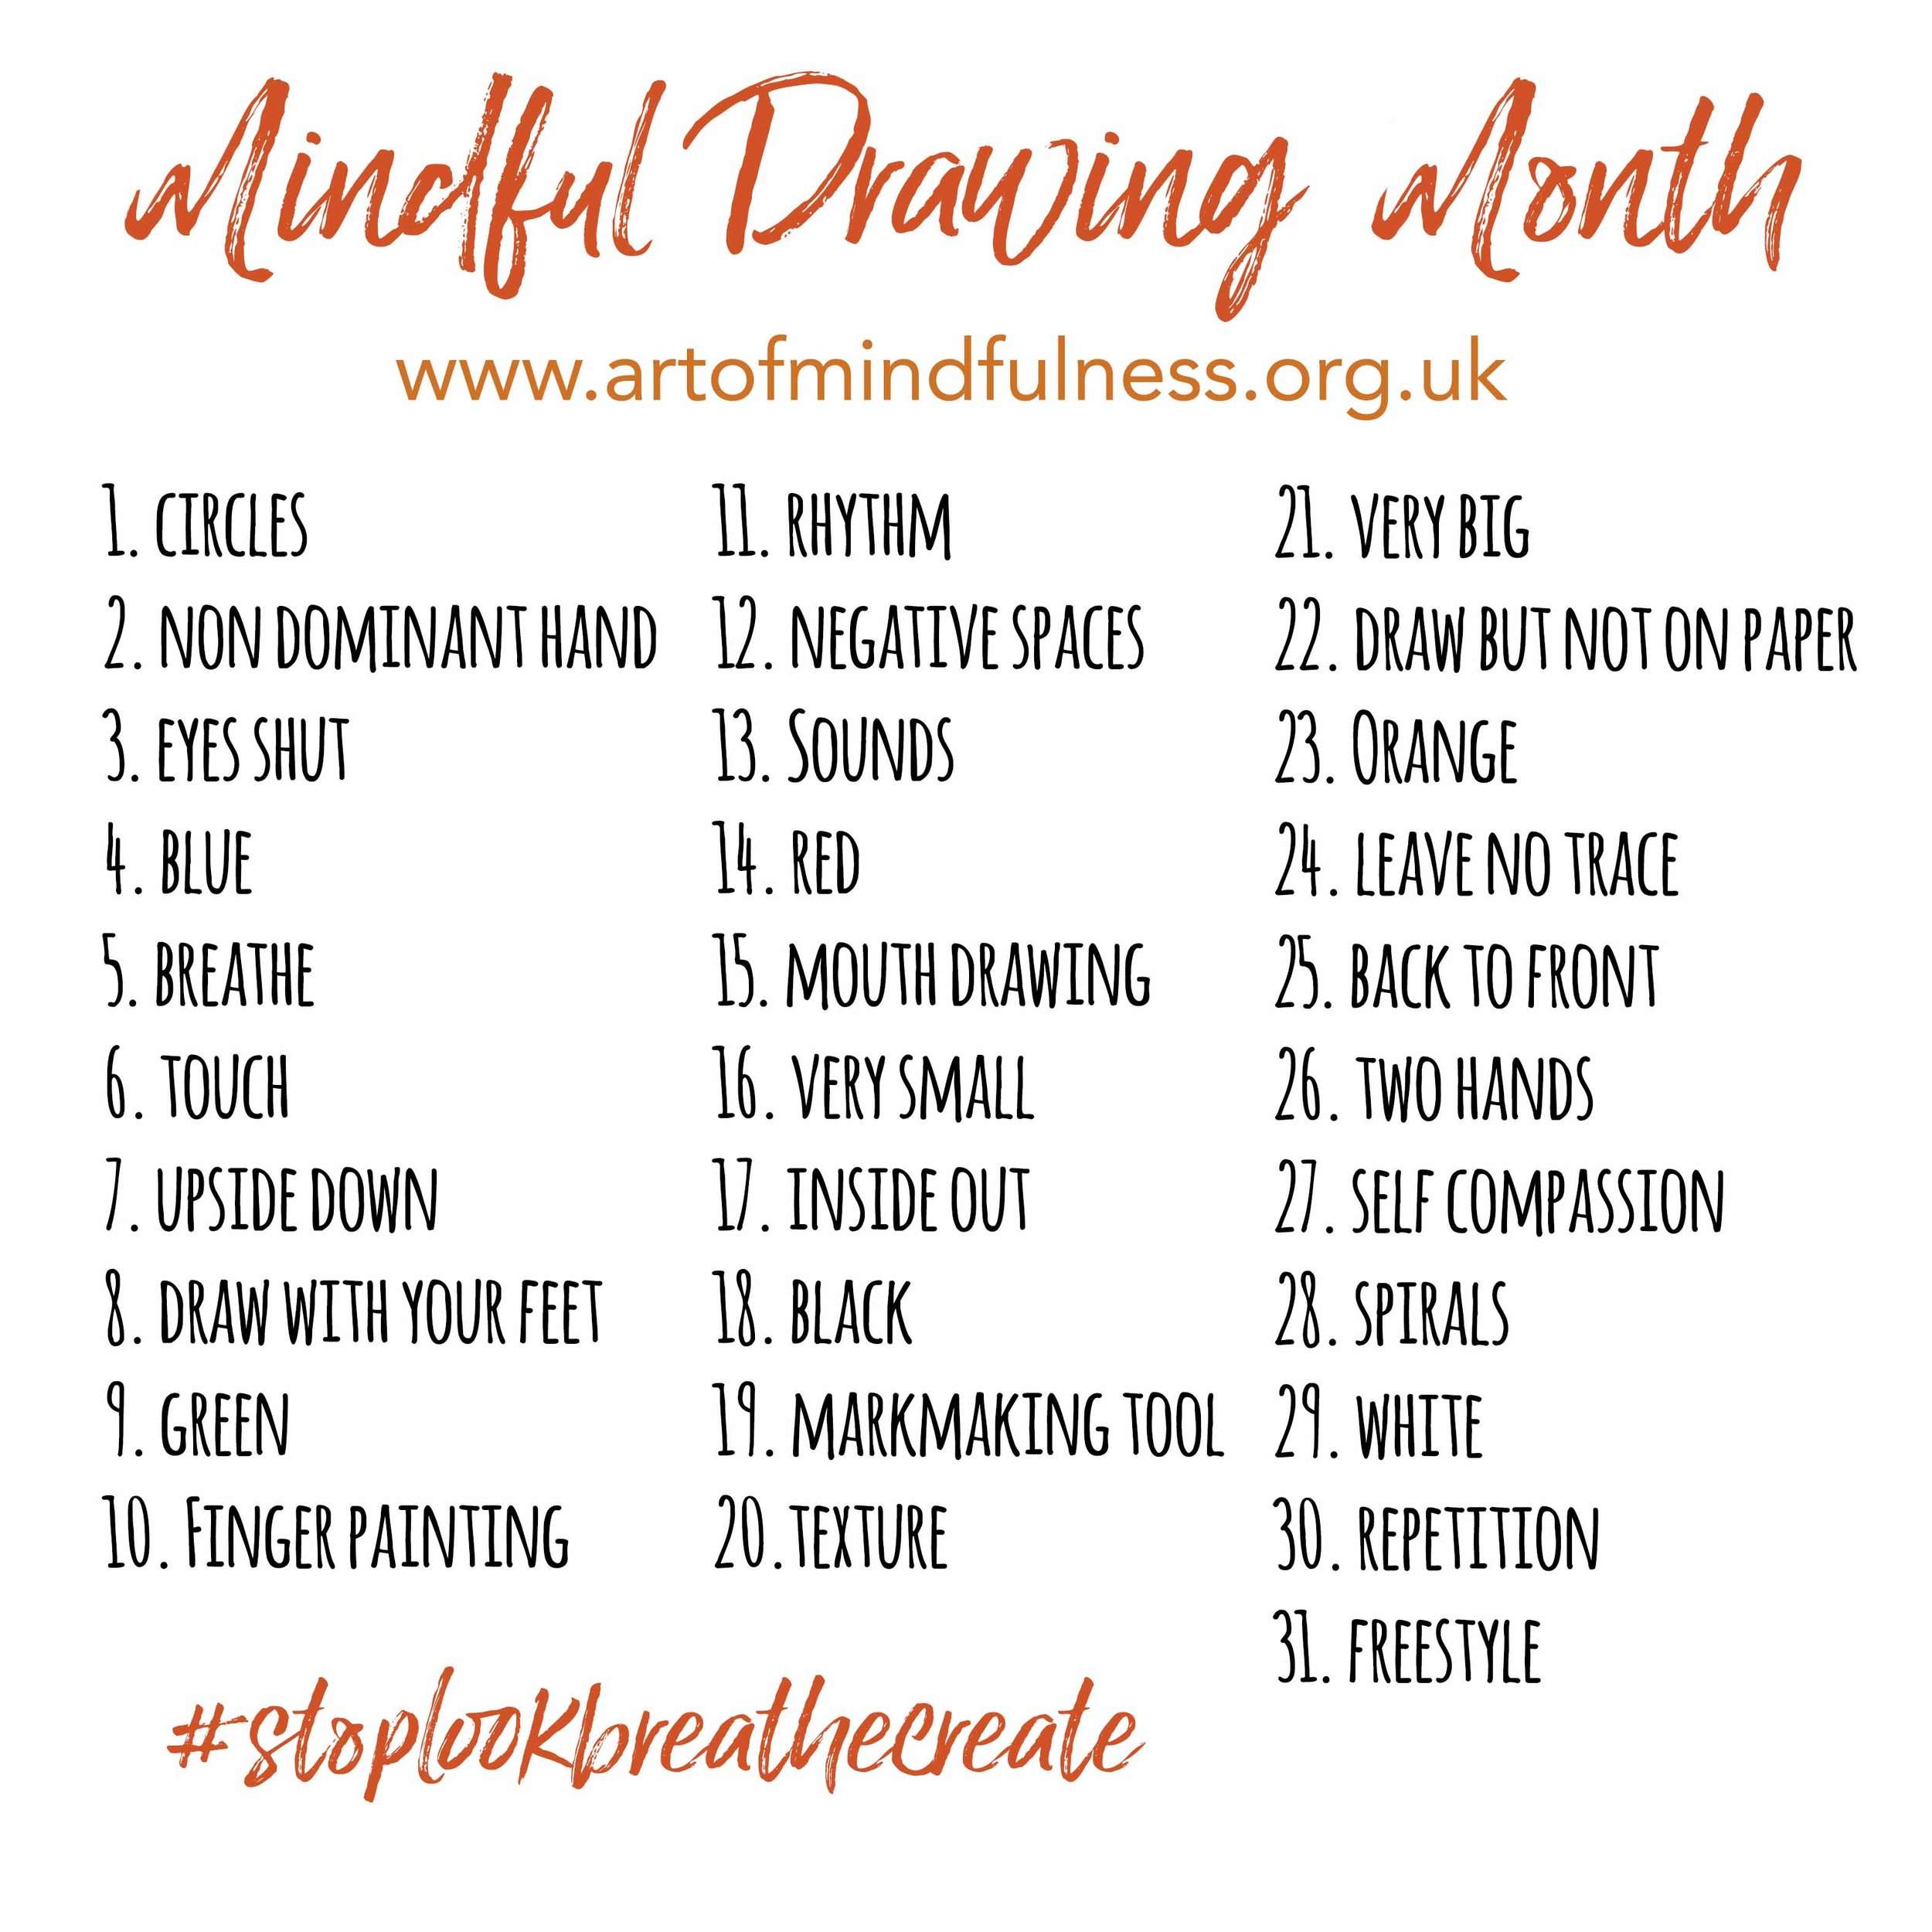 mindful drawing month 2018.jpg